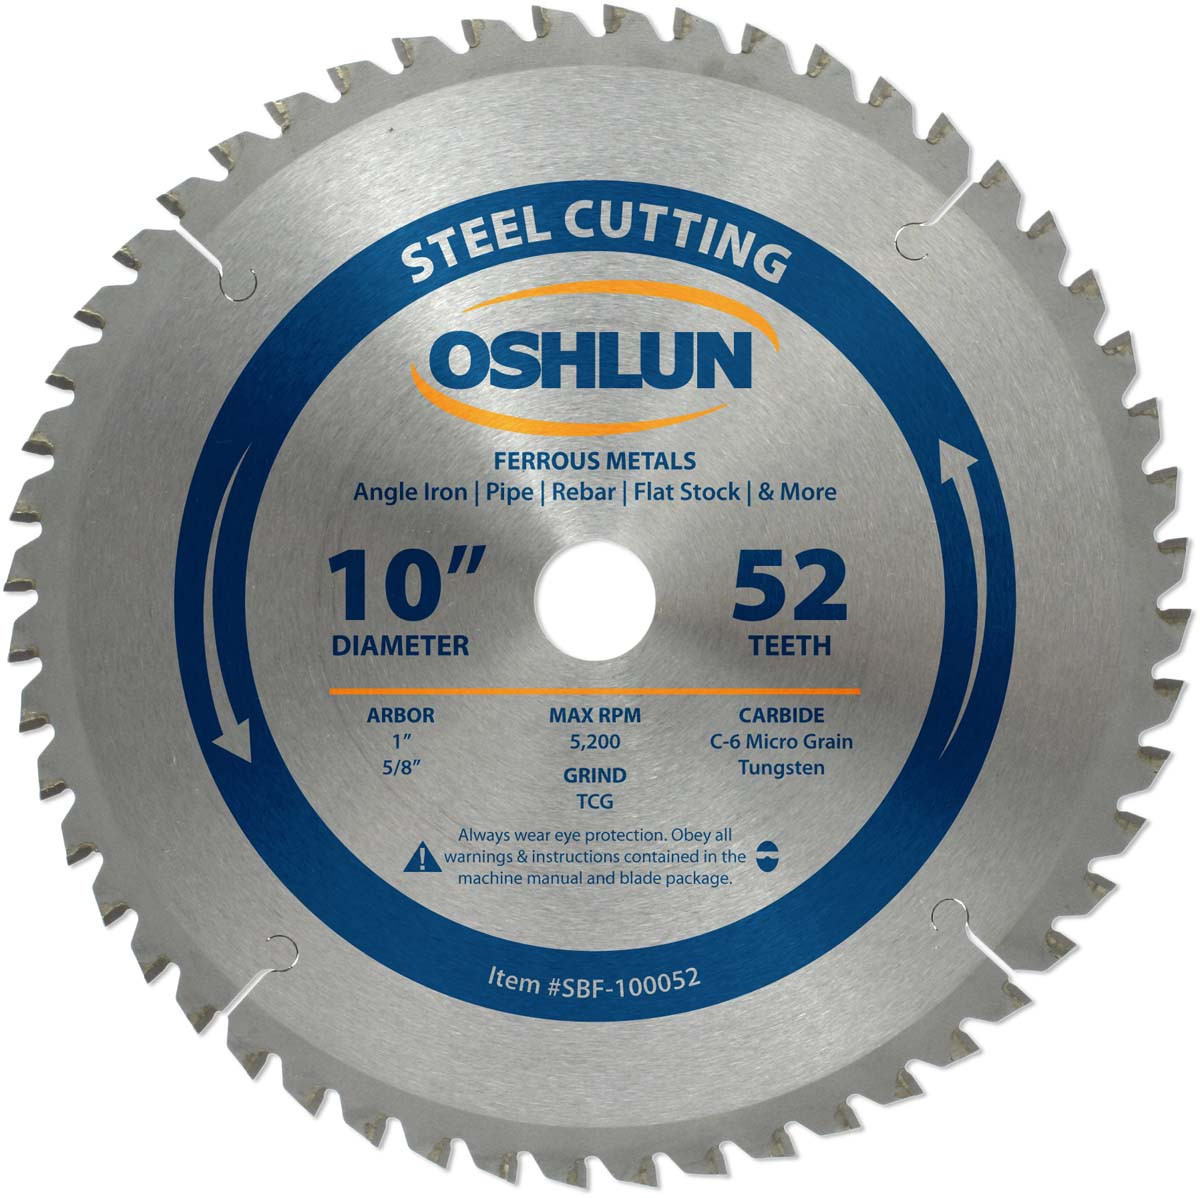 Steel cutting circular saw ferrous metal saw blades greentooth